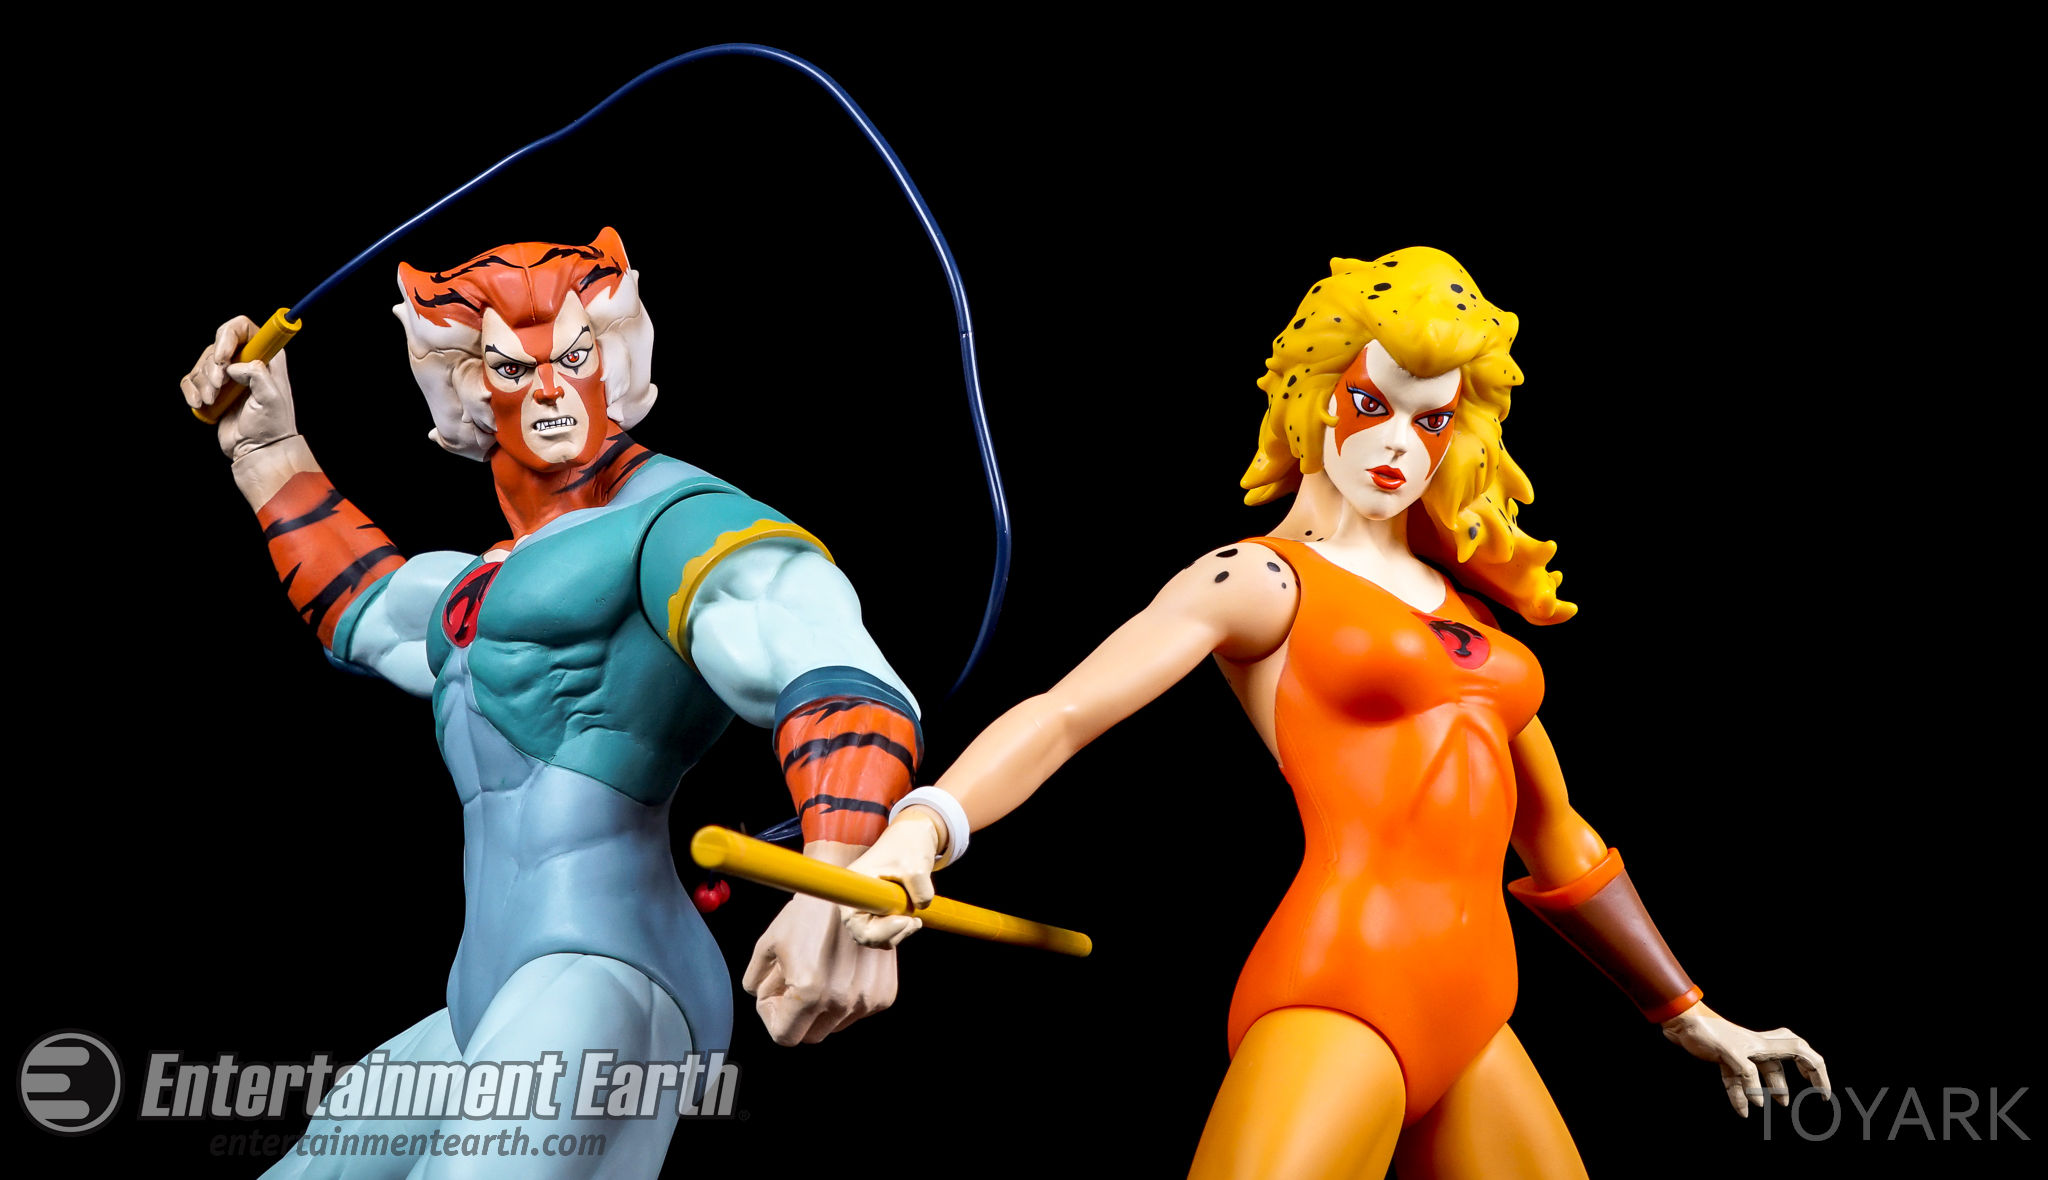 http://news.toyark.com/wp-content/uploads/sites/4/2016/05/Mezco-Thundercats-Tygra-036.jpg